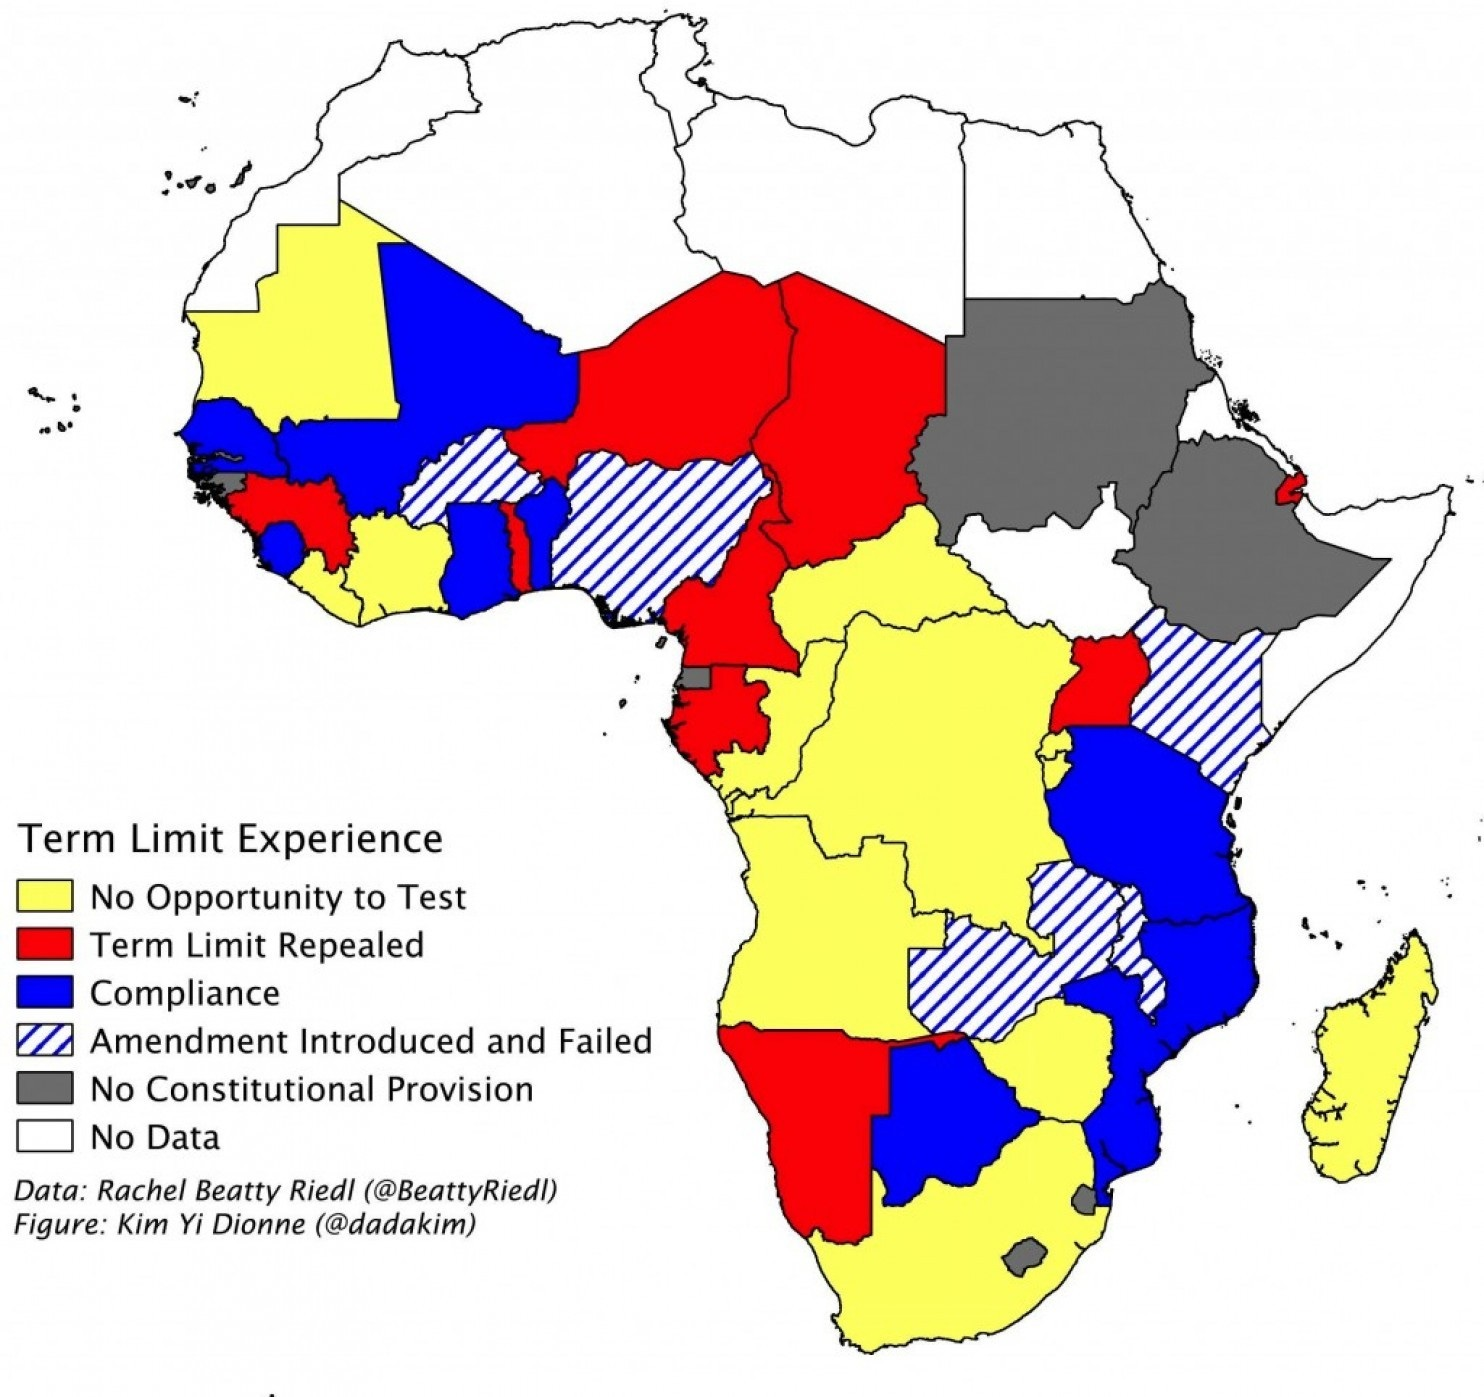 African countries are shaded according to their experience as of February 2015 regarding attempts to repeal constitutional term limits of the executive. Data: Rachel Beatty Riedl. (Kim Yi Dionne/The Monkey Cage)